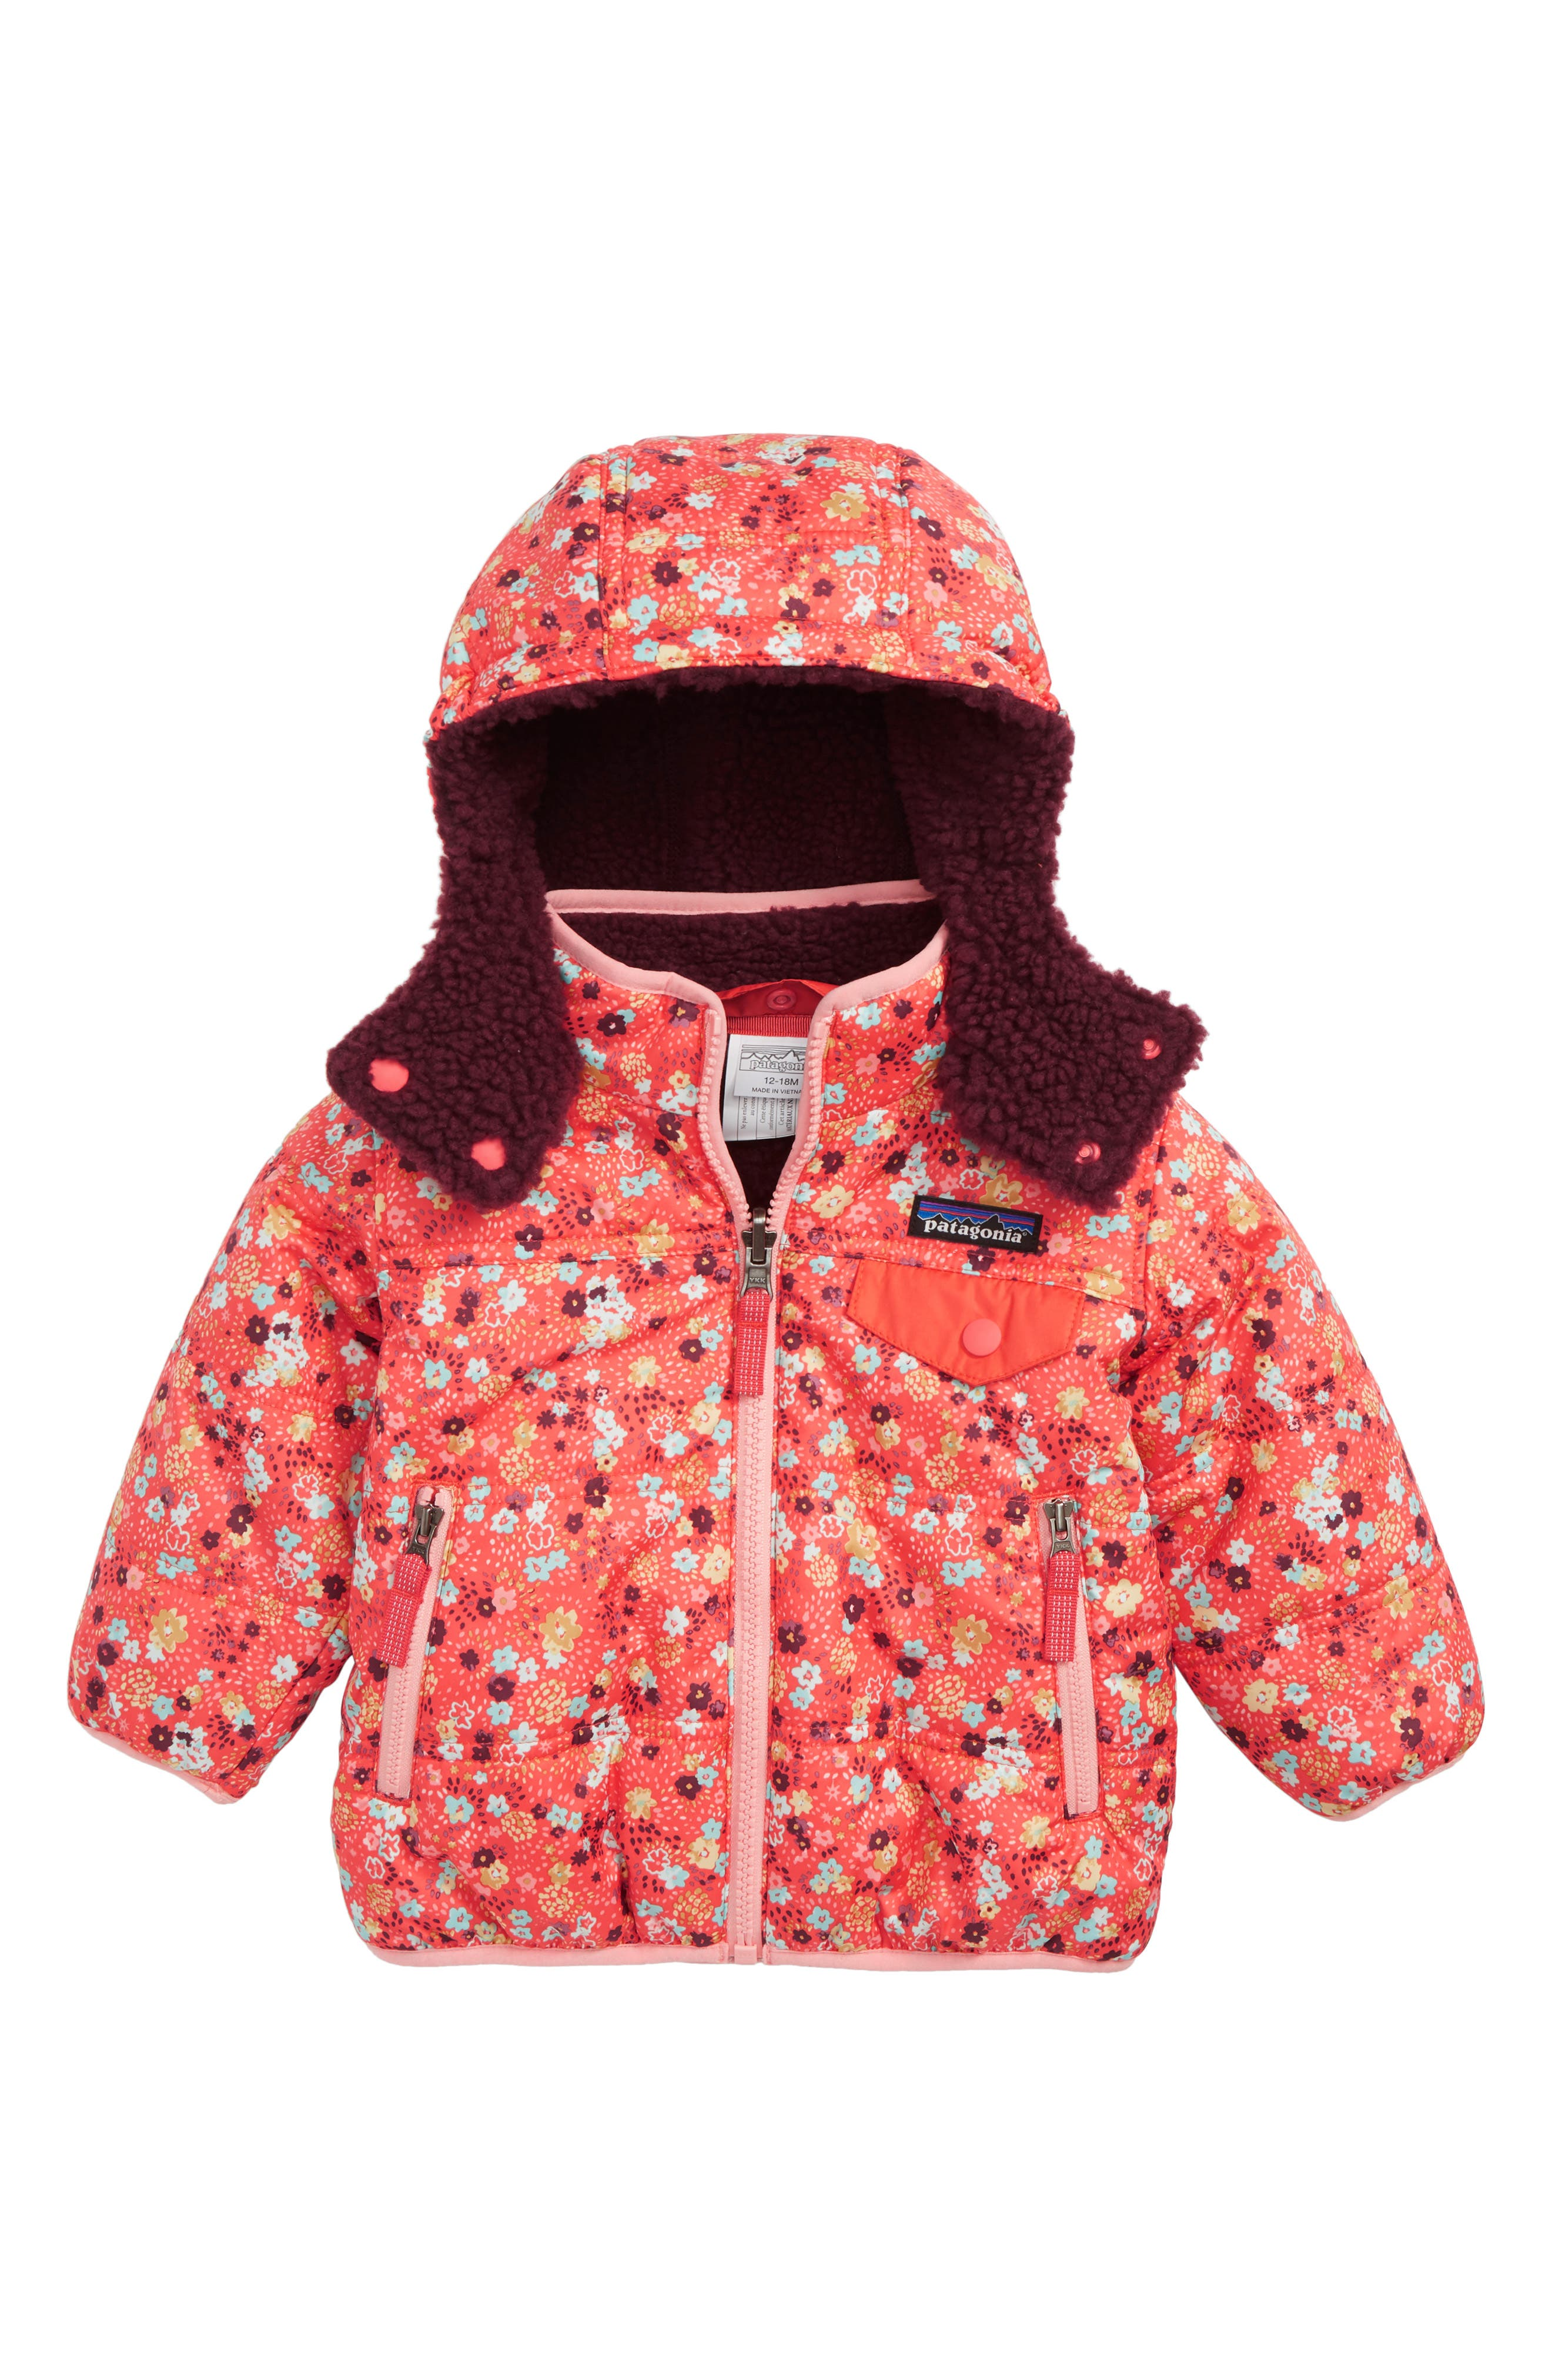 Tribbles Reversible Water Resistant Snow Jacket,                             Main thumbnail 1, color,                             UDSC UNTAMED DITSY SPICE CORAL